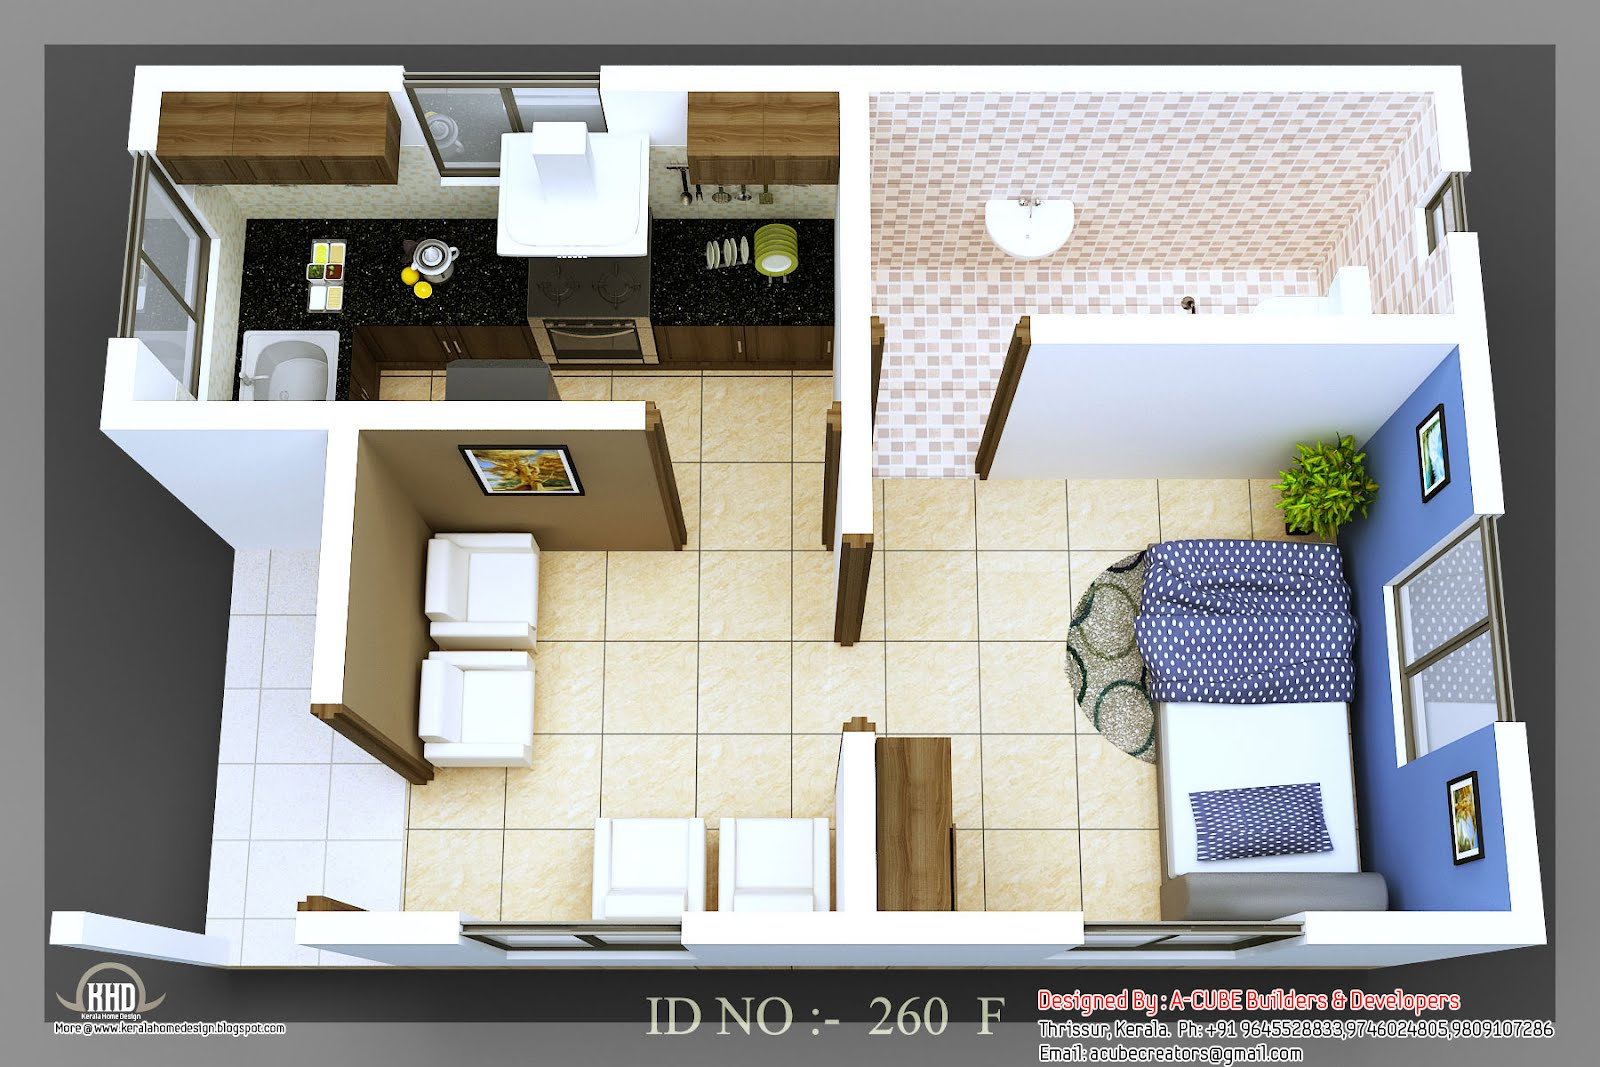 3d isometric views of small house plans kerala home for Interior design ideas for small homes